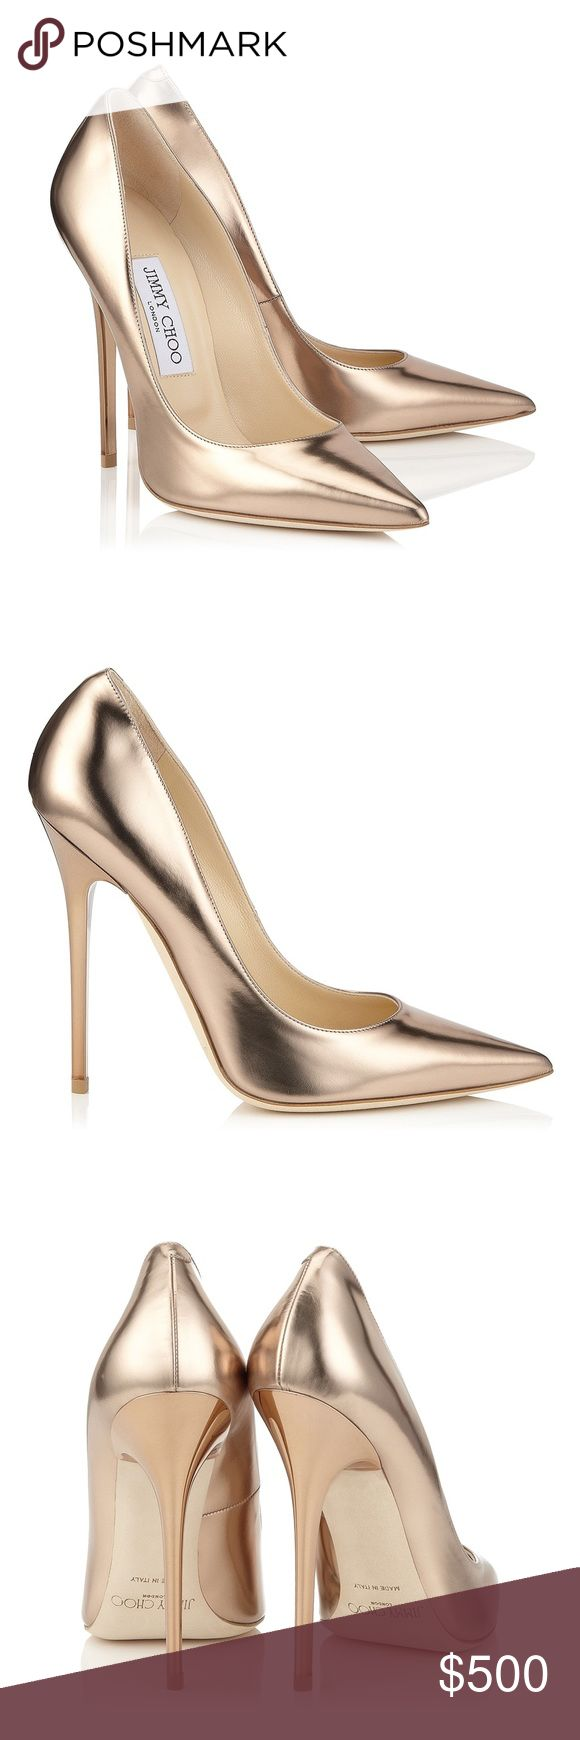 Jimmy Choo Anouk 120 nude mirror leather pumps Jimmy Choo Anouk pointy toe pumps in nude mirror leather. The color is like a rose gold. 120 mm heel. Comes with box and dust bag. Worn a couple times, excellent condition. Jimmy Choo Shoes Heels #jimmychooheelsgold